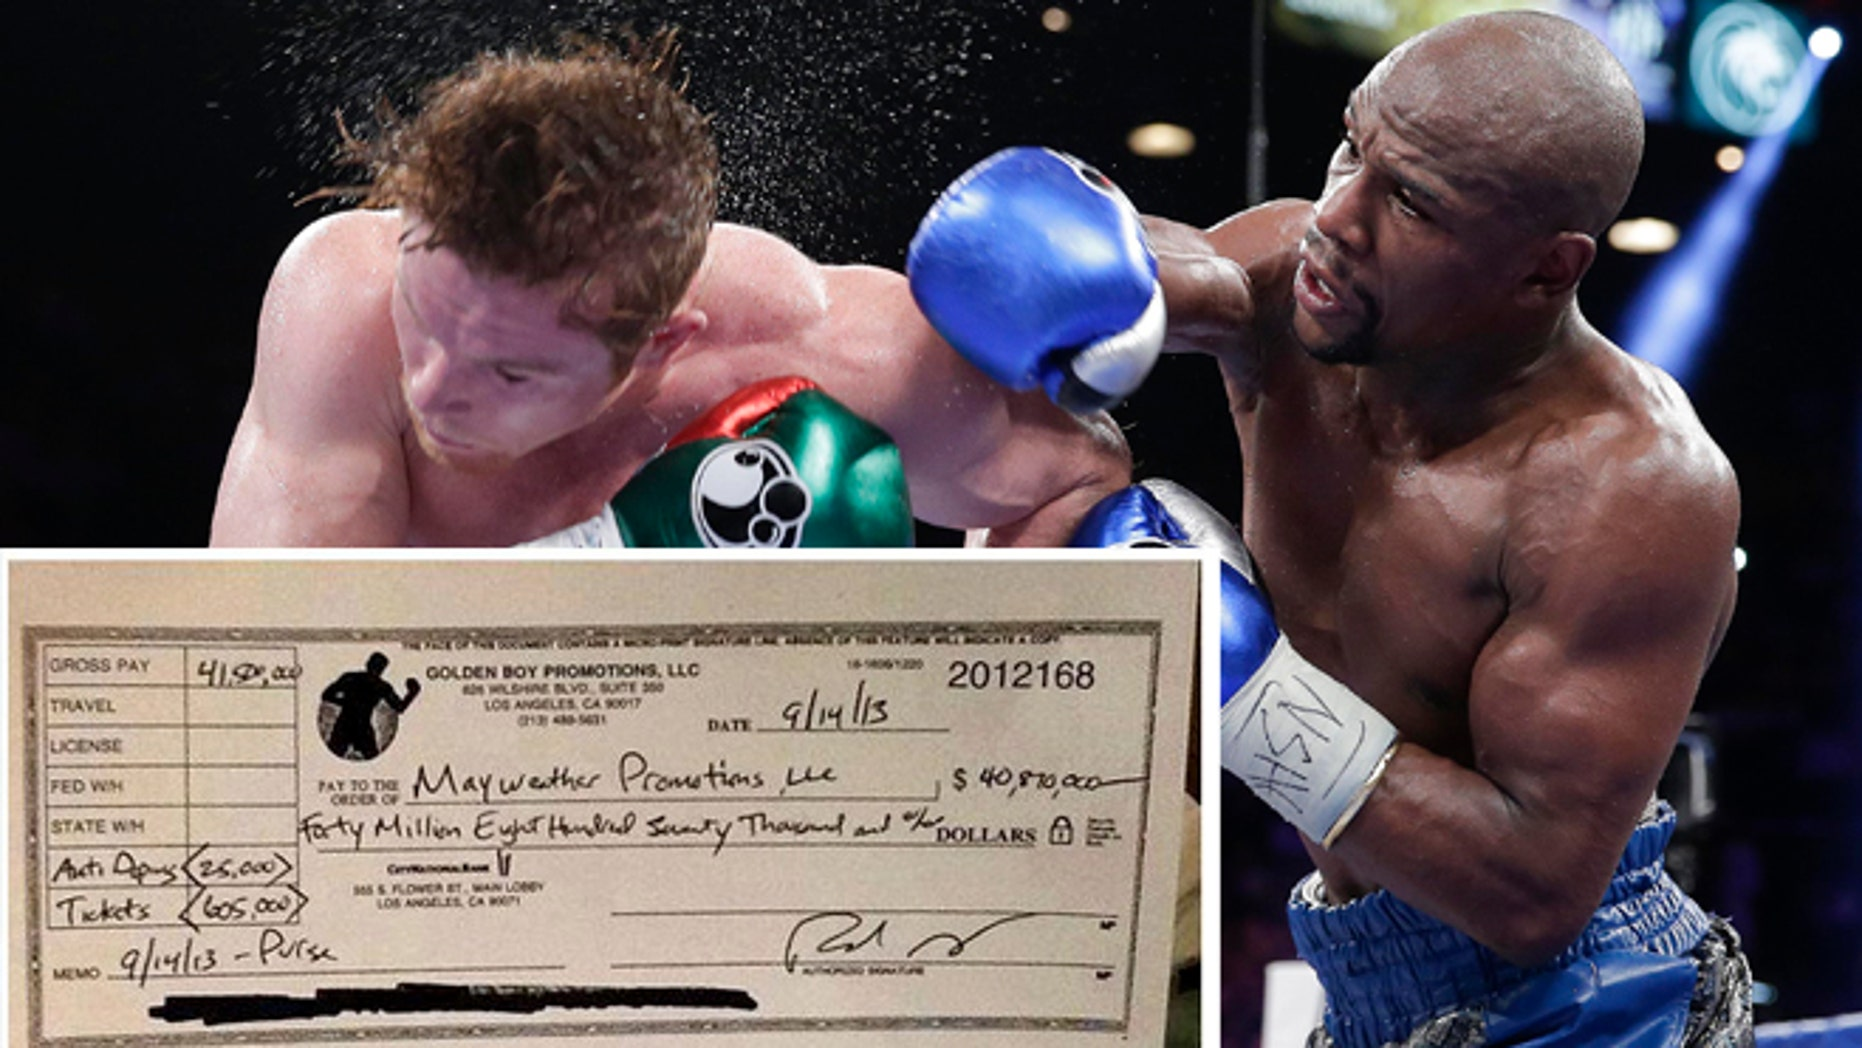 Floyd Mayweather Jr. and Canelo Alvarez during their fight on September 14, 2013.